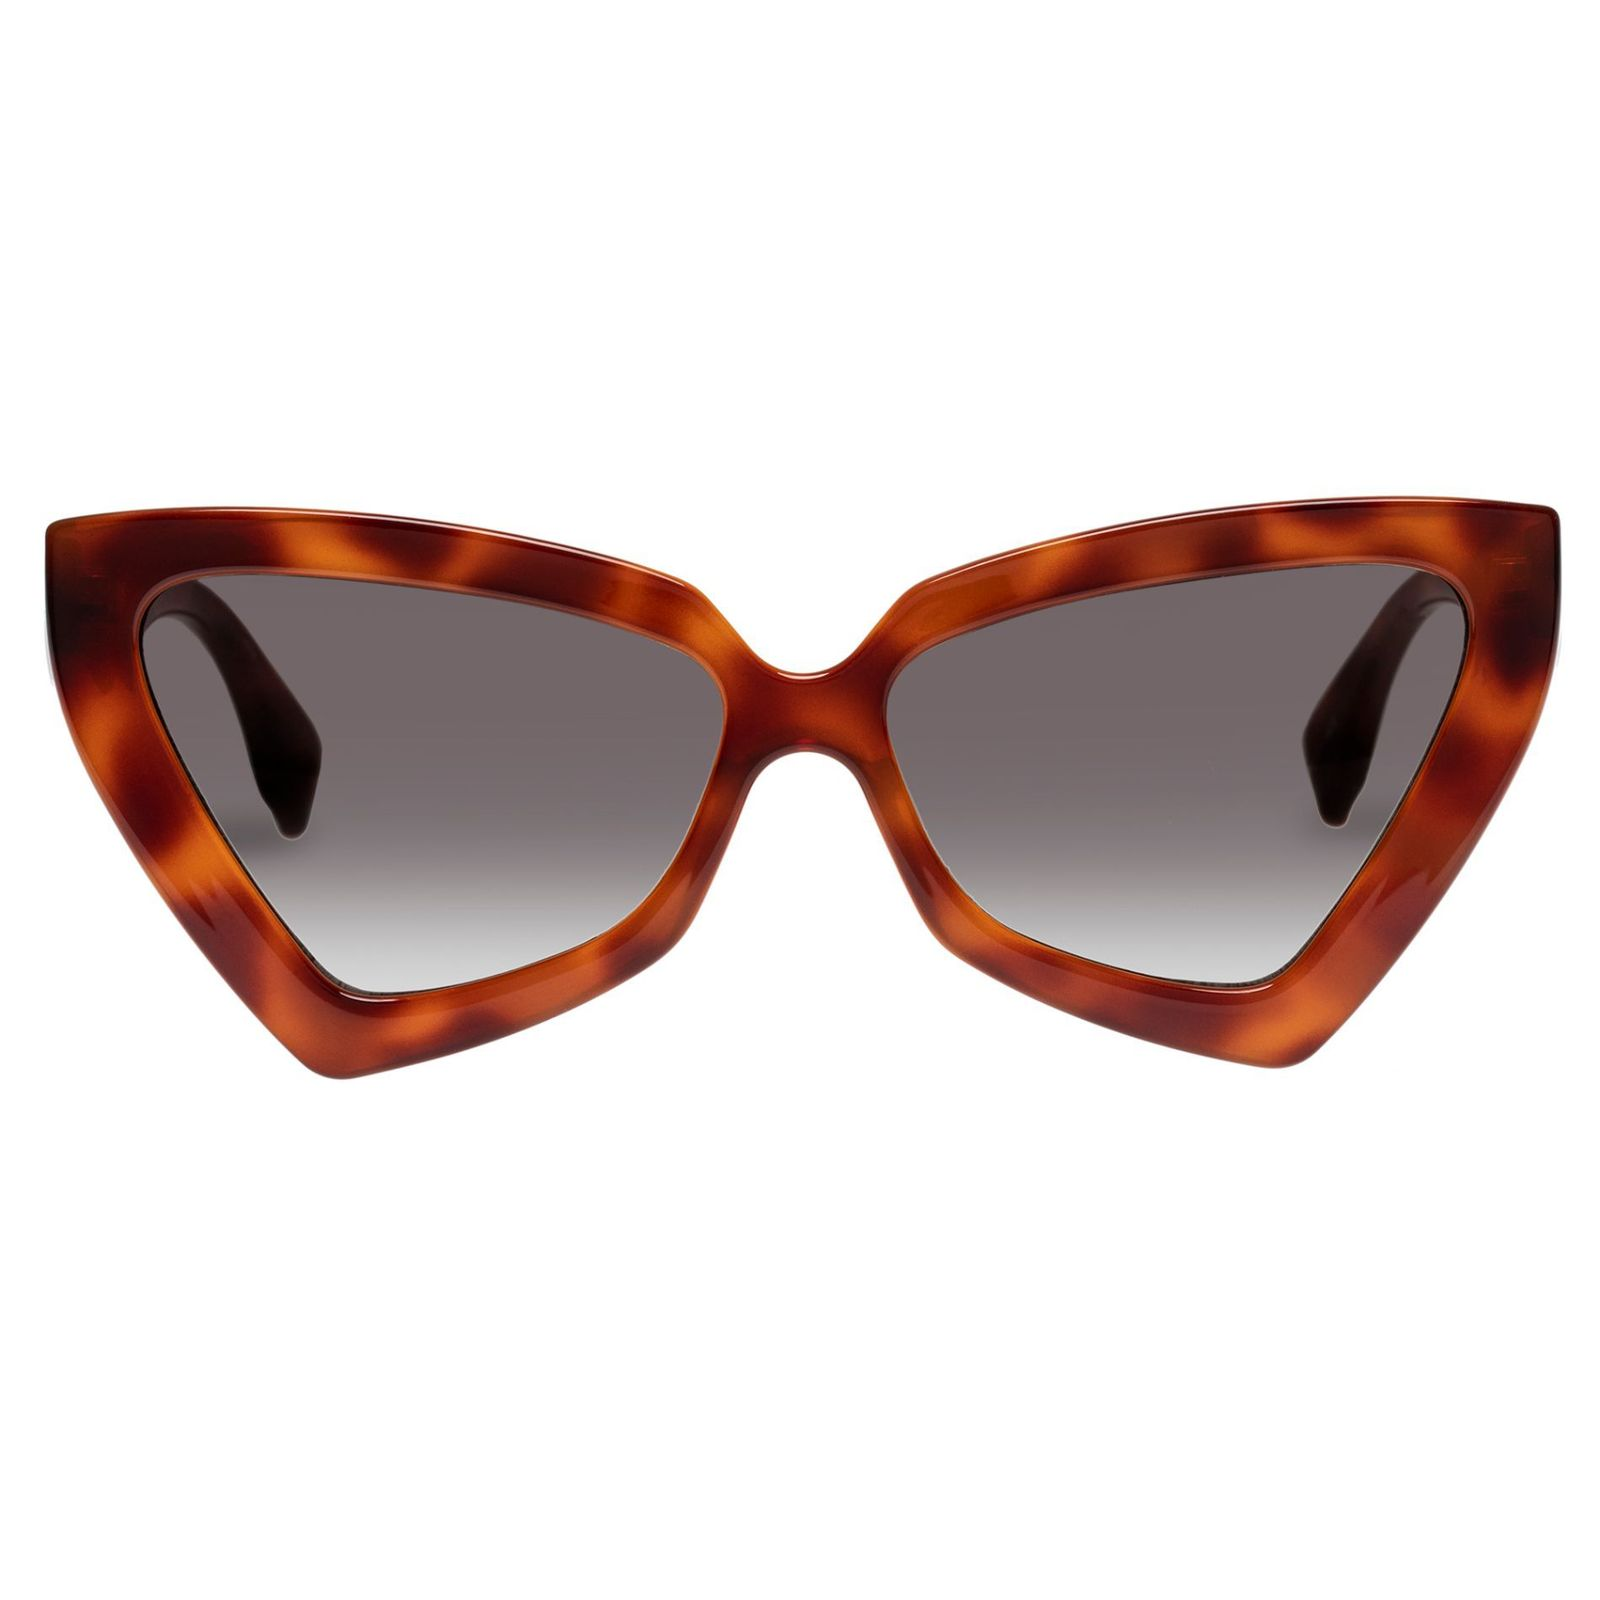 Le Specs- Rinky Dink- Tort